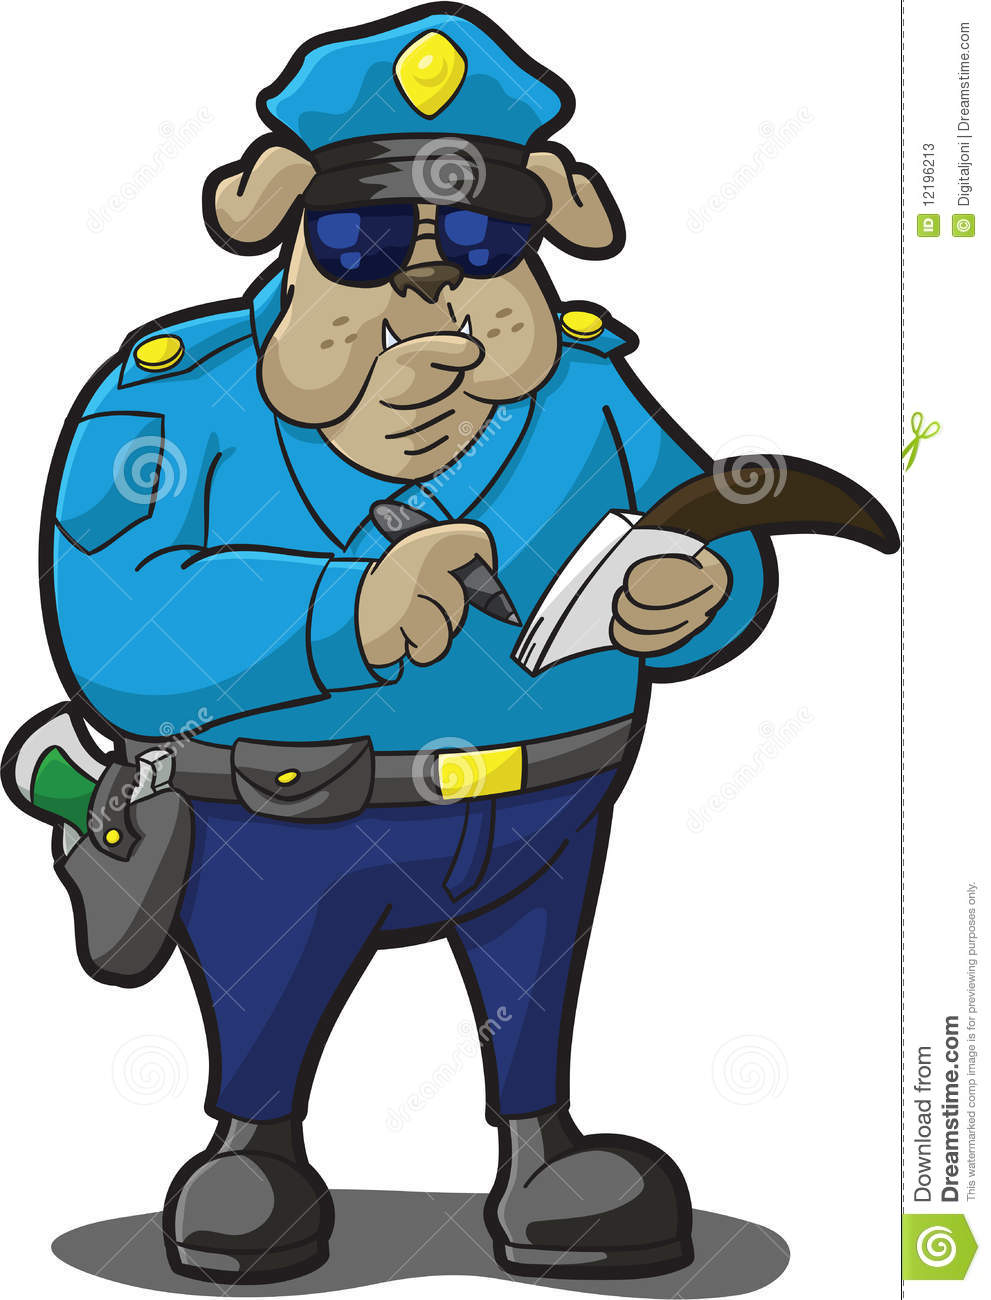 Policeman clipart police suit. Officers free download best